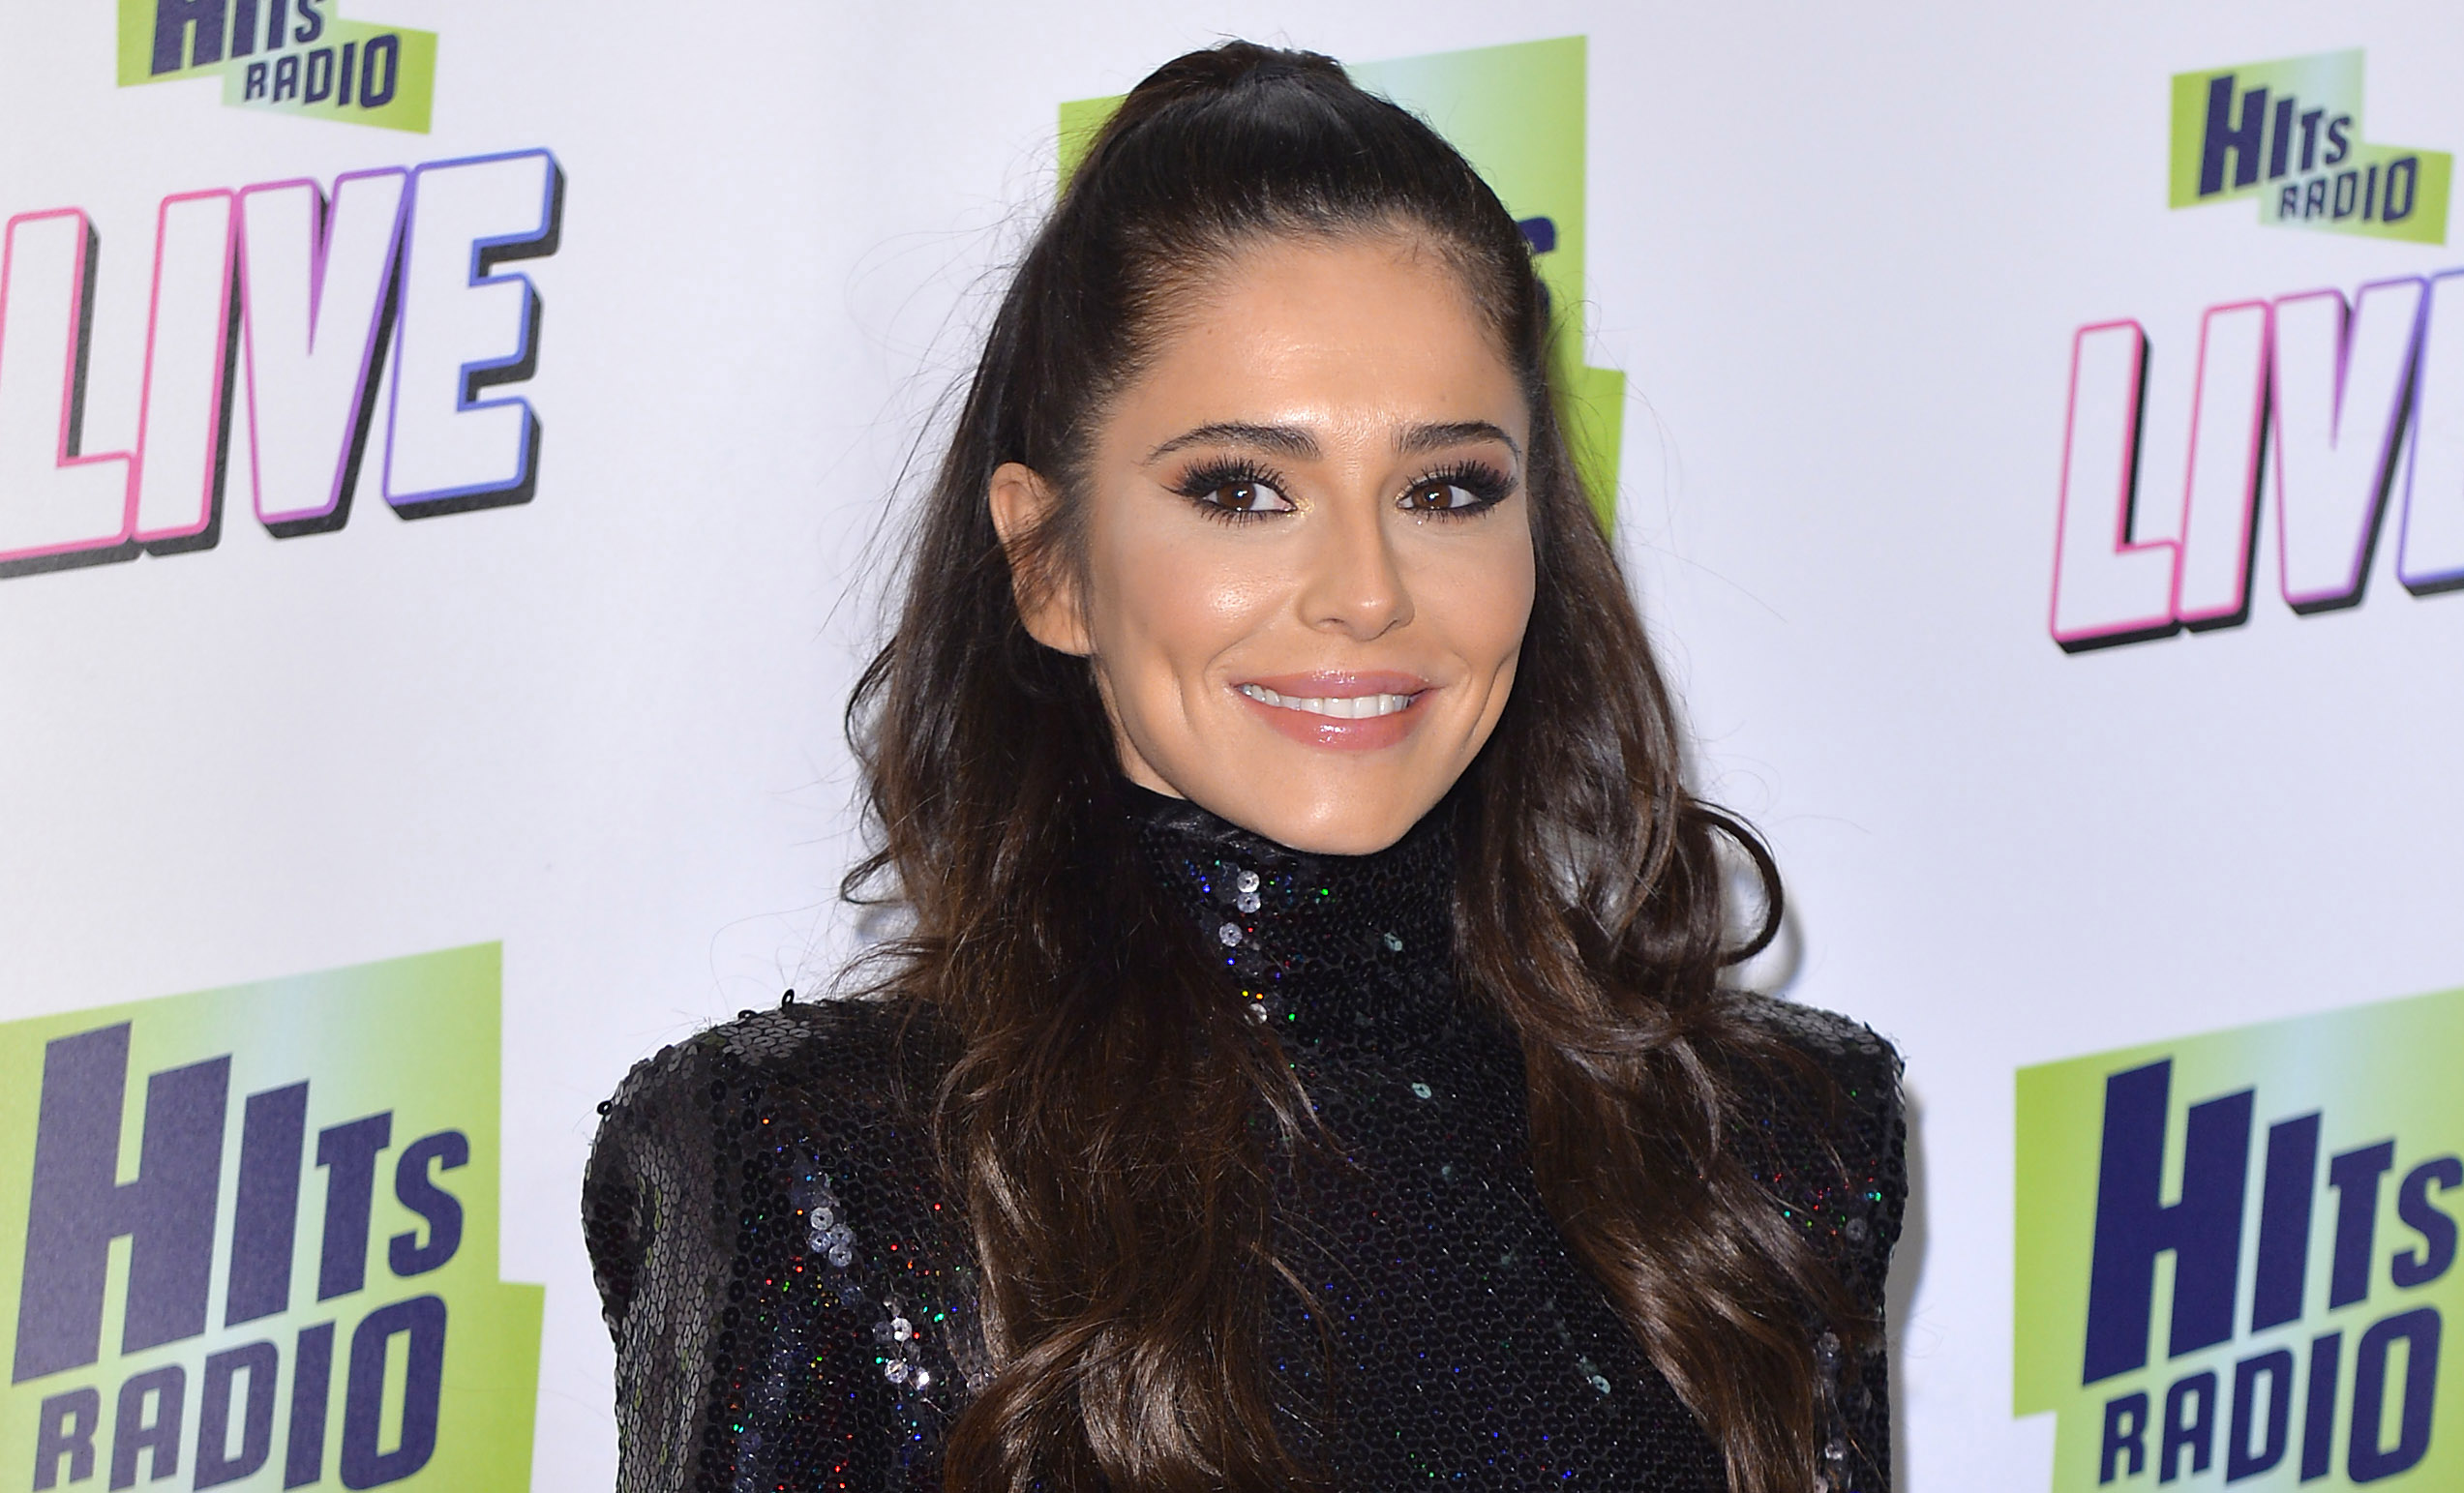 Cheryl warned to tone down raunchy dance for primetime TV